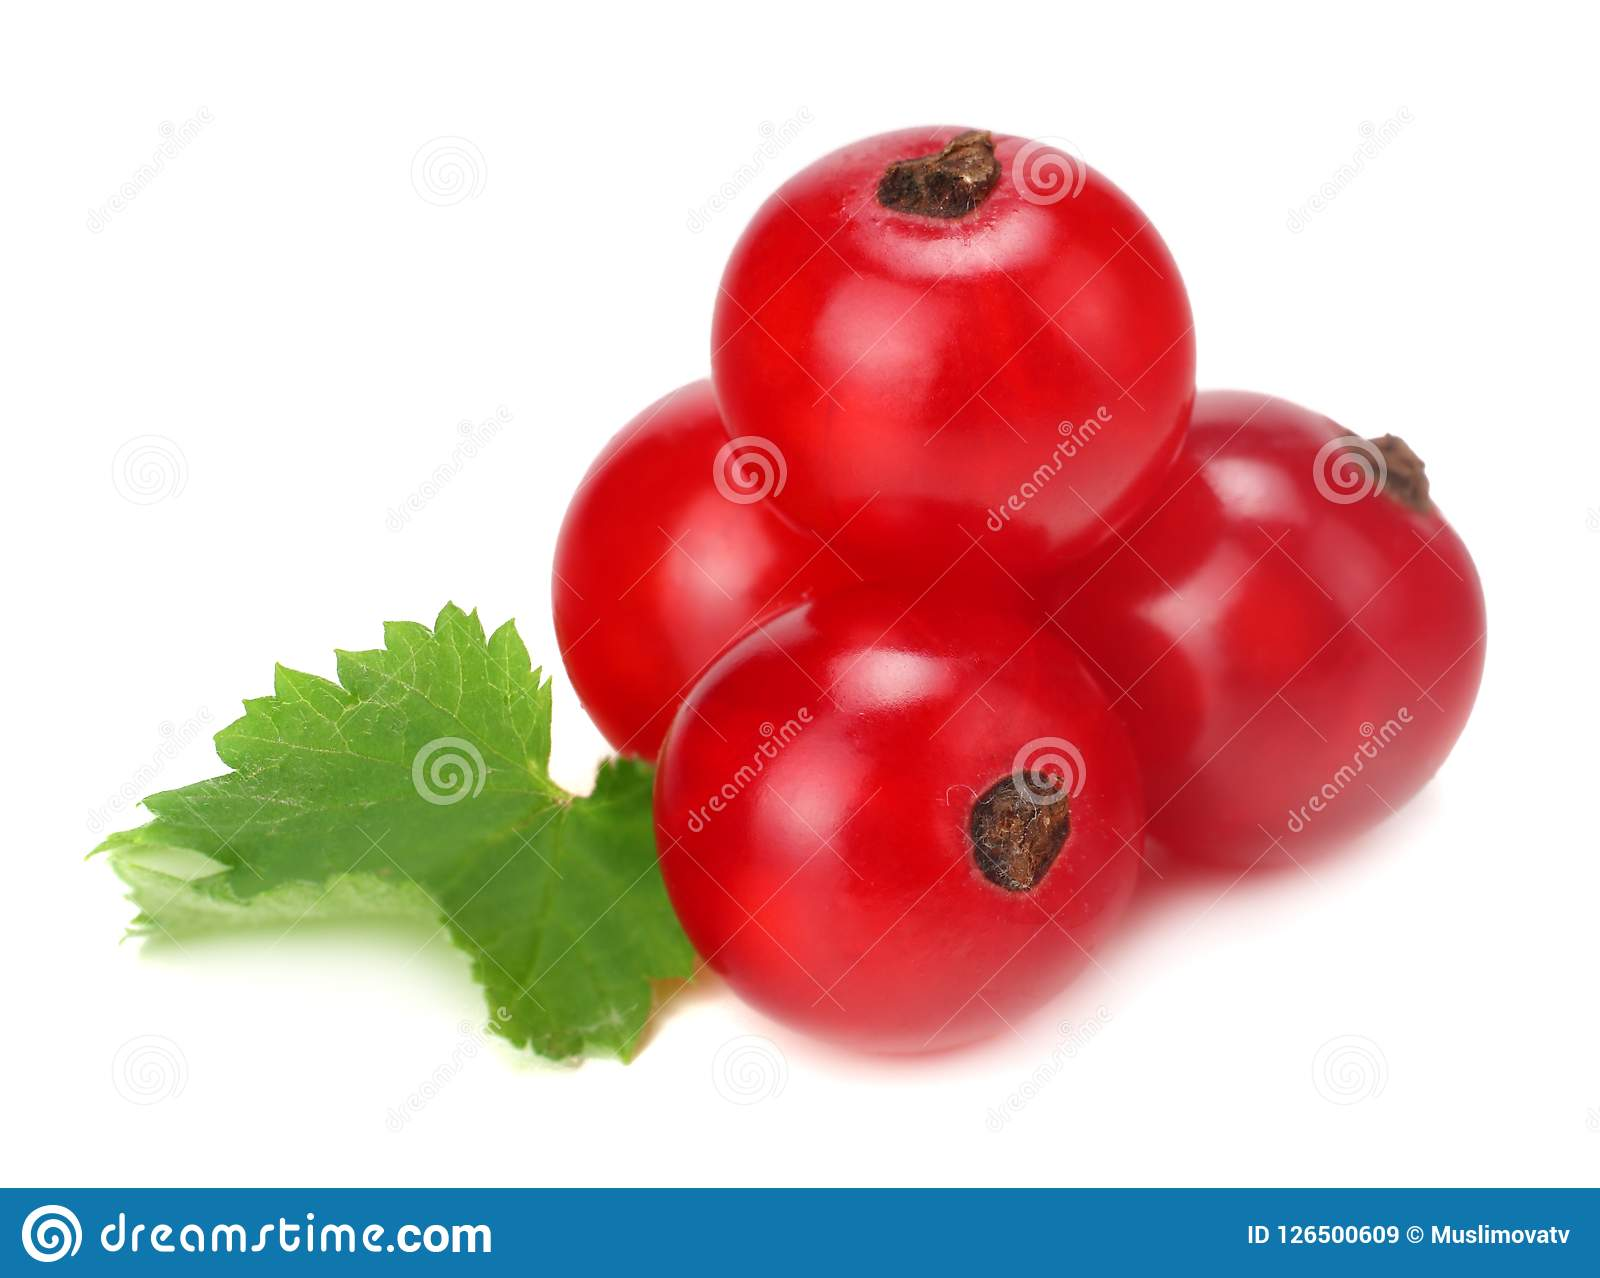 red currant with green leaf isolated on a white background. macro. healthy food